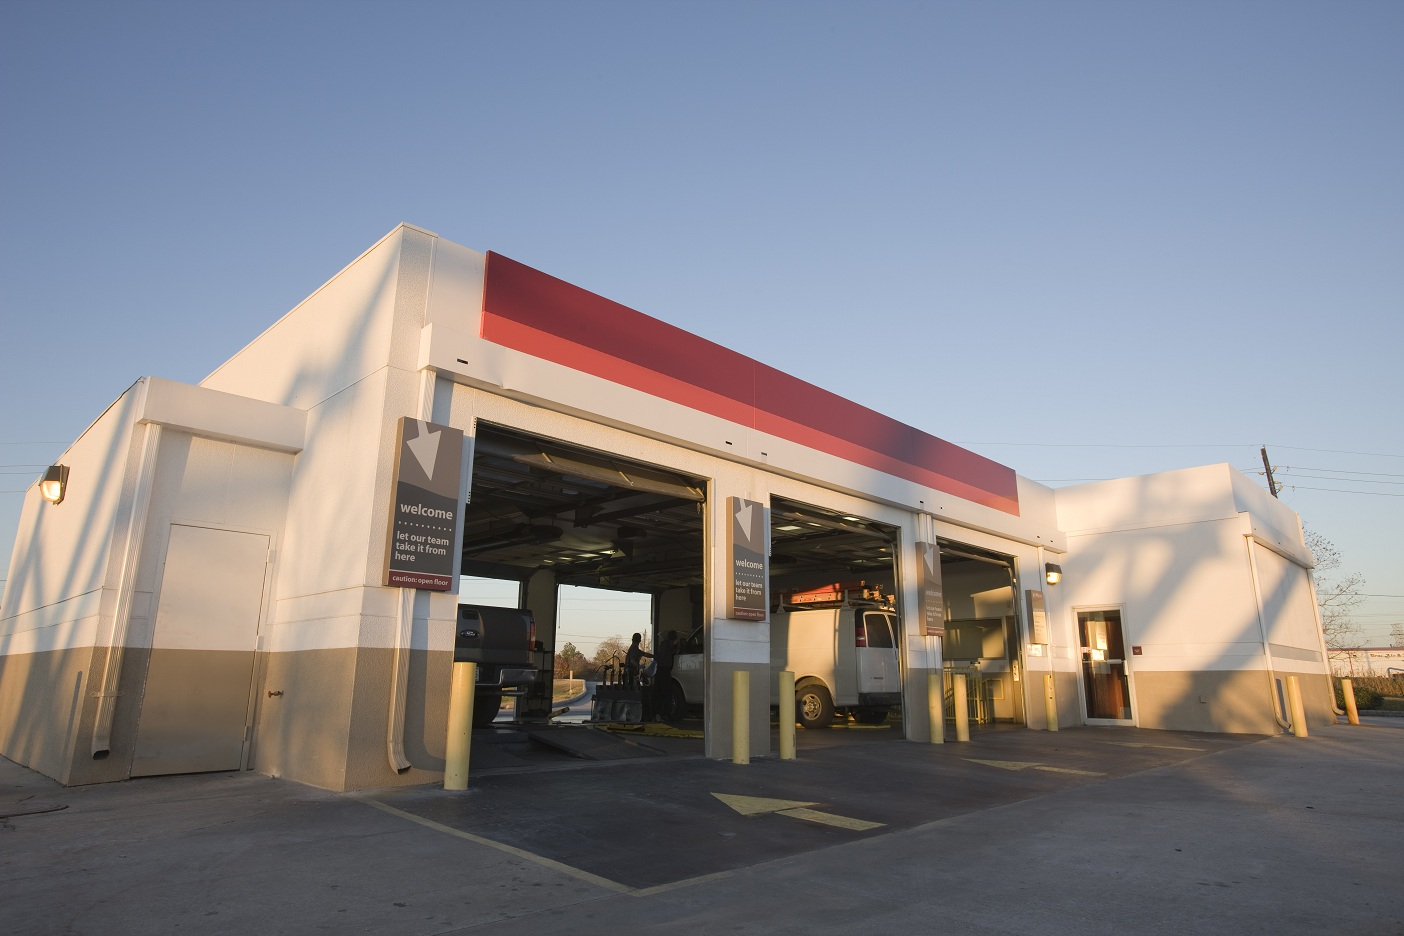 Jiffy Lube in YUCCA VALLEY, CA